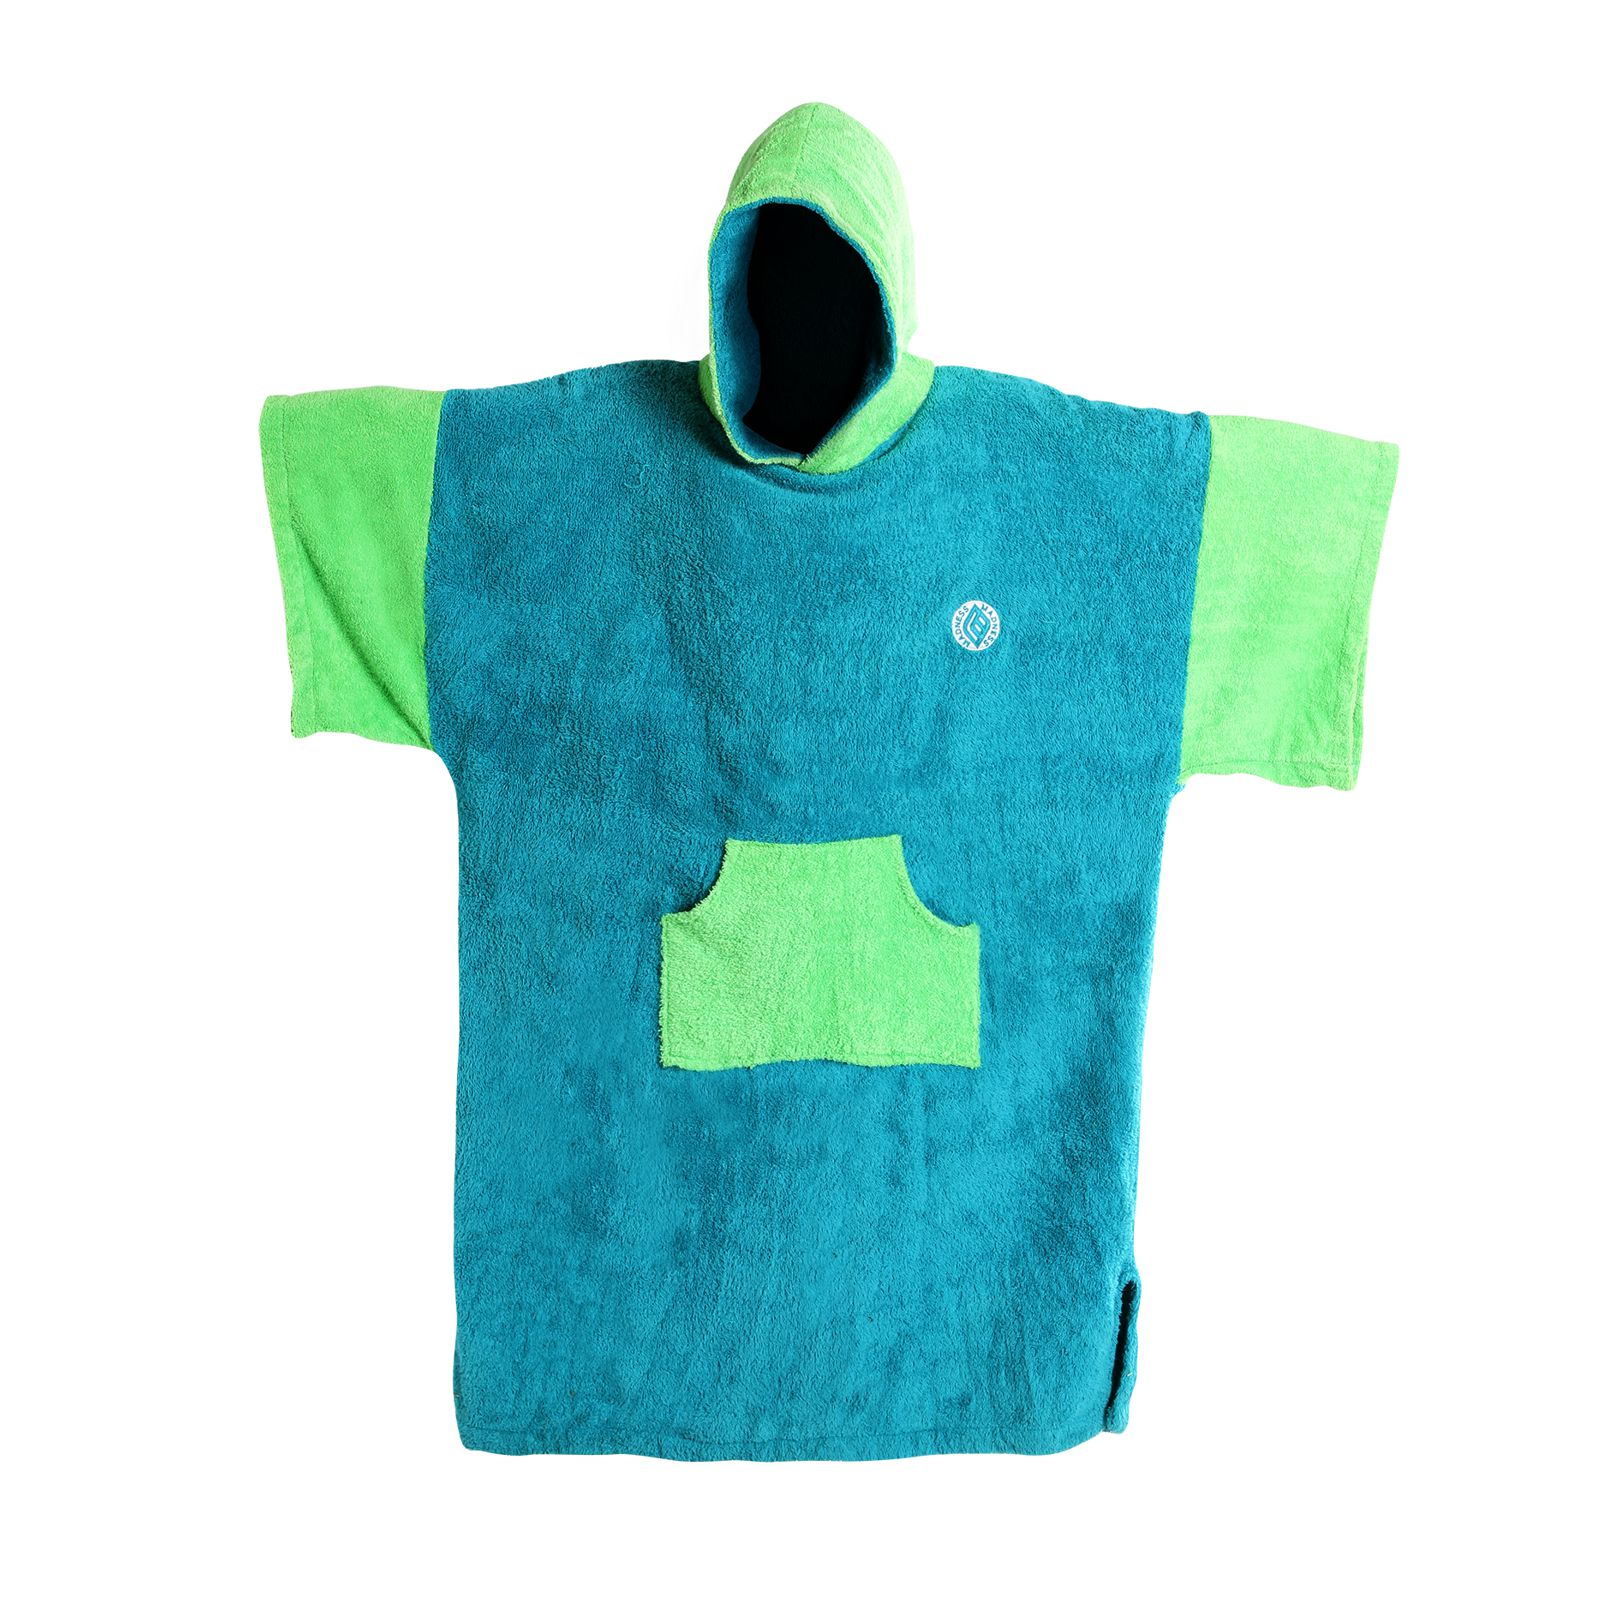 MADNESS Change Robe Poncho Unisize Teal-Lime